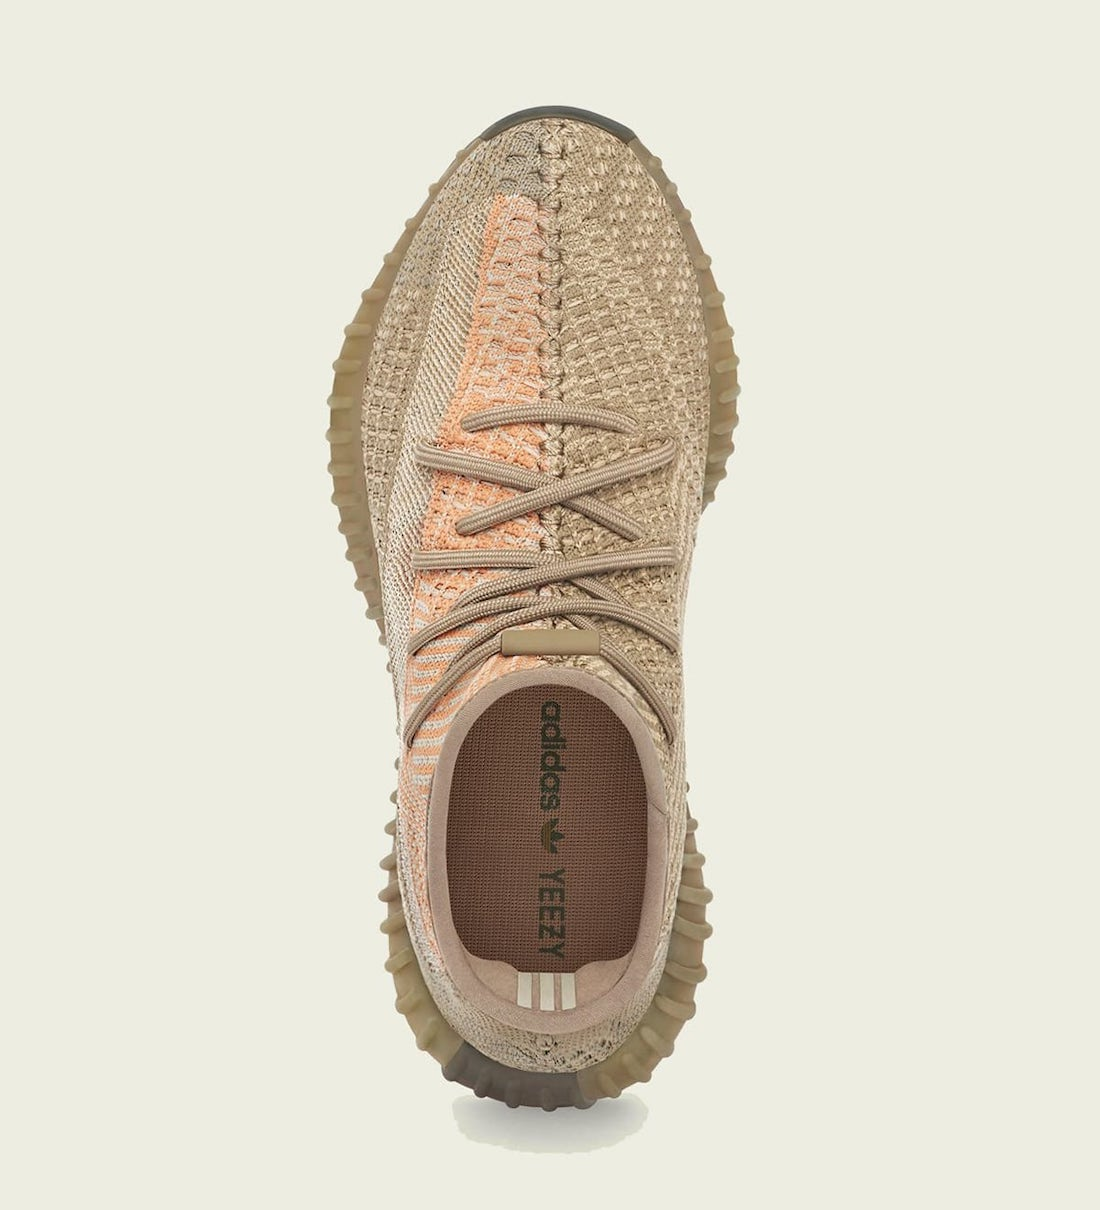 adidas Yeezy Boost 350 V2 Sand Taupe FZ5240 Release Date Price